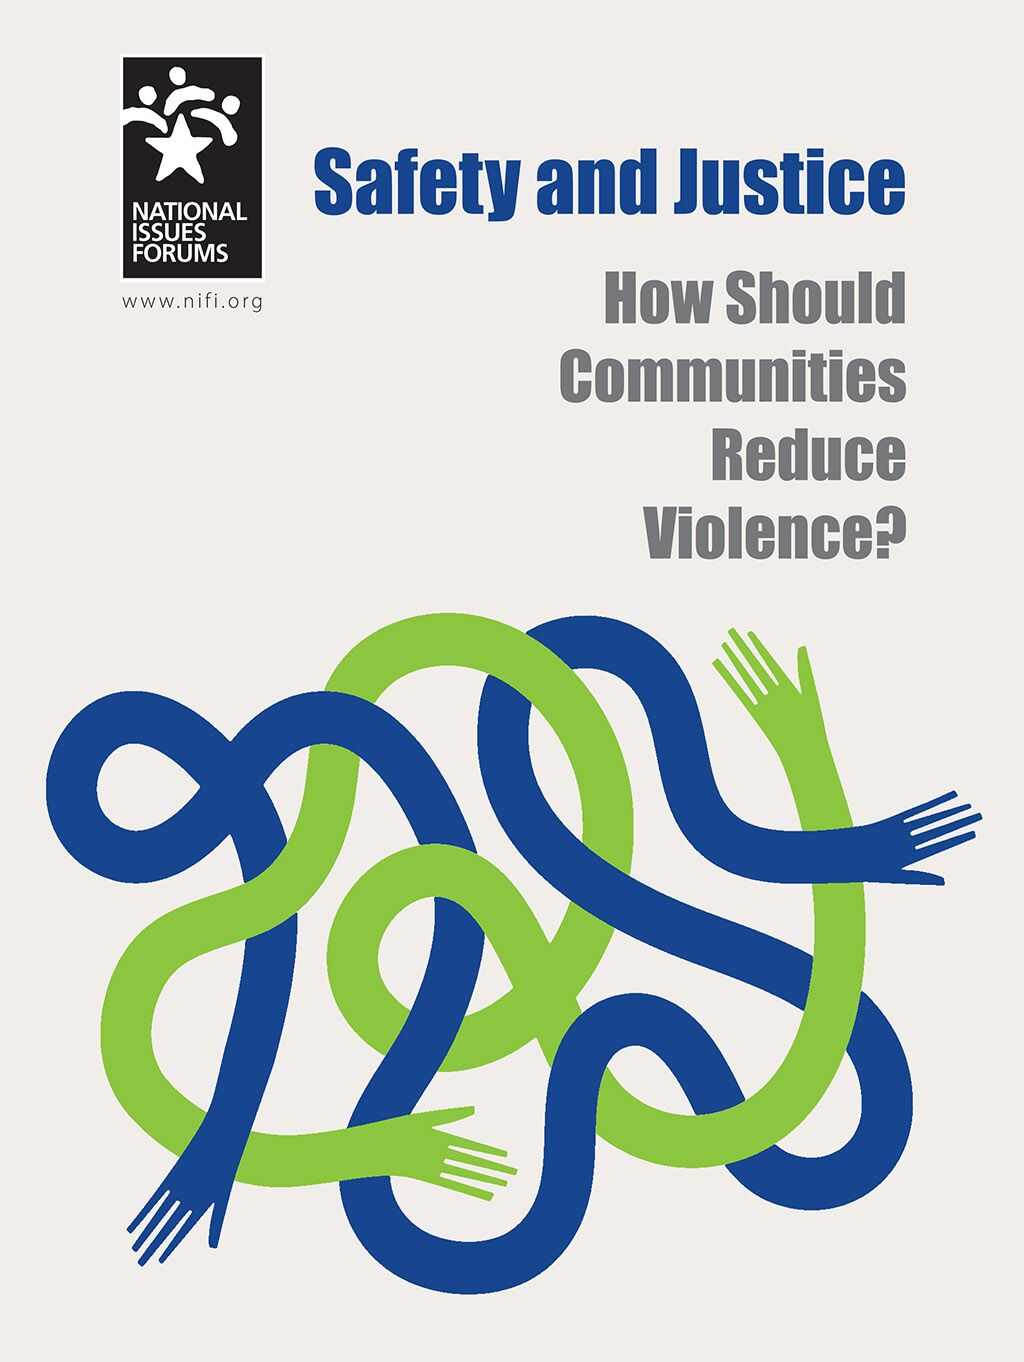 Safety and Justice issue guide cover